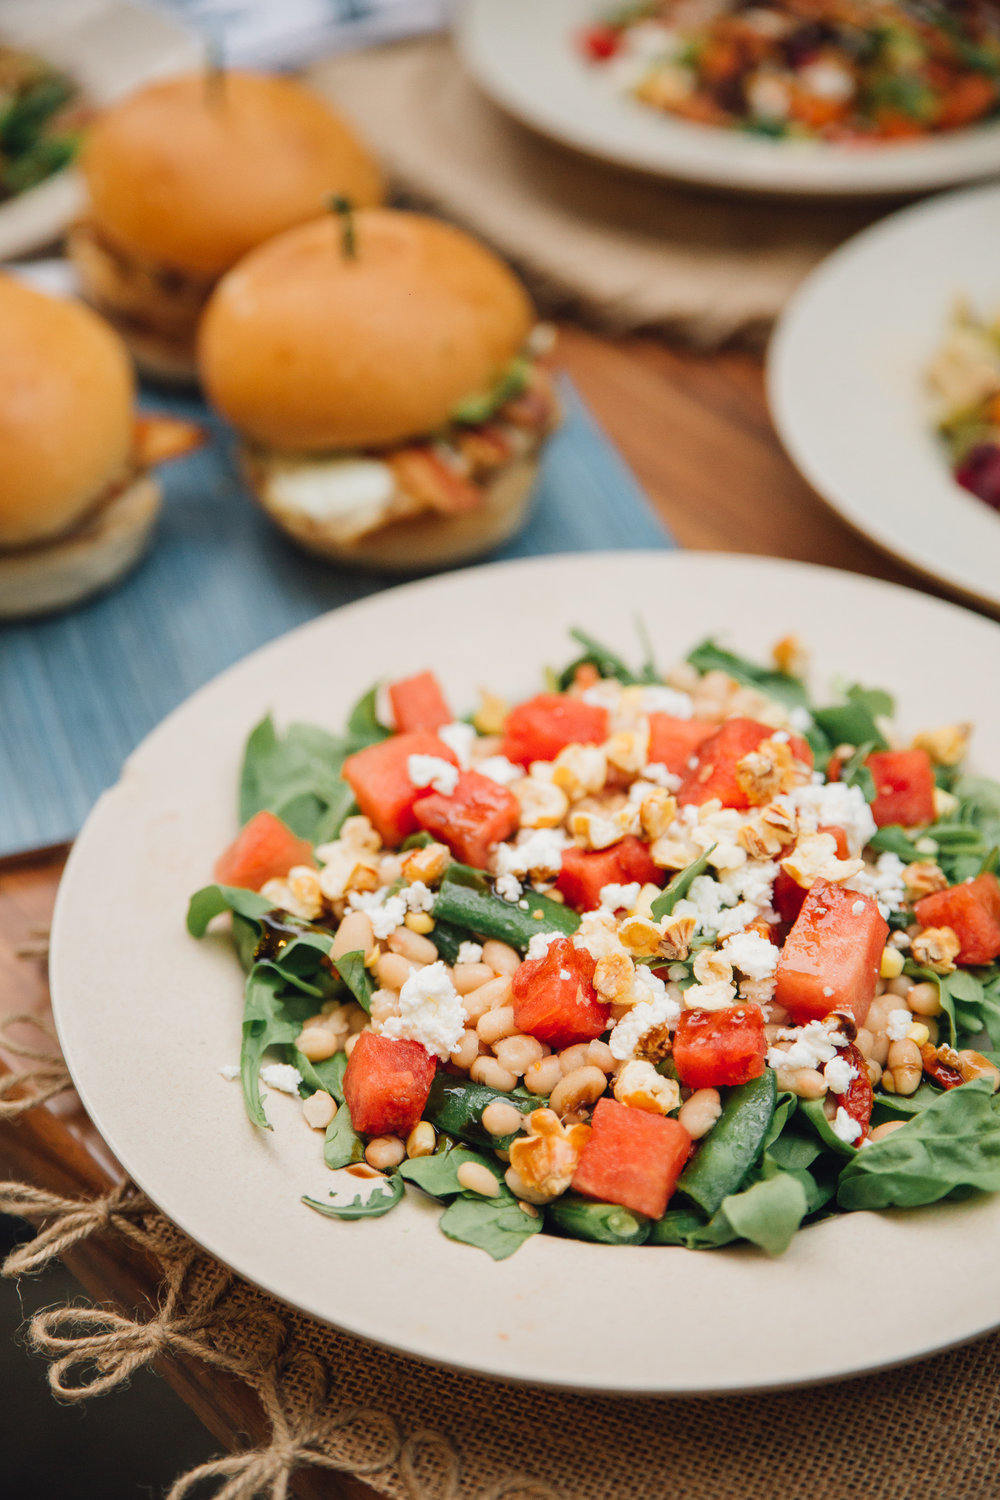 Ingredients:watermelon, feta, arugula, baby spinach, white bean salad (cannellinis, snap peas, corn, sun dried tomato), toasted corn, mint, balsamic glaze, red wine vinegar and olive oil.